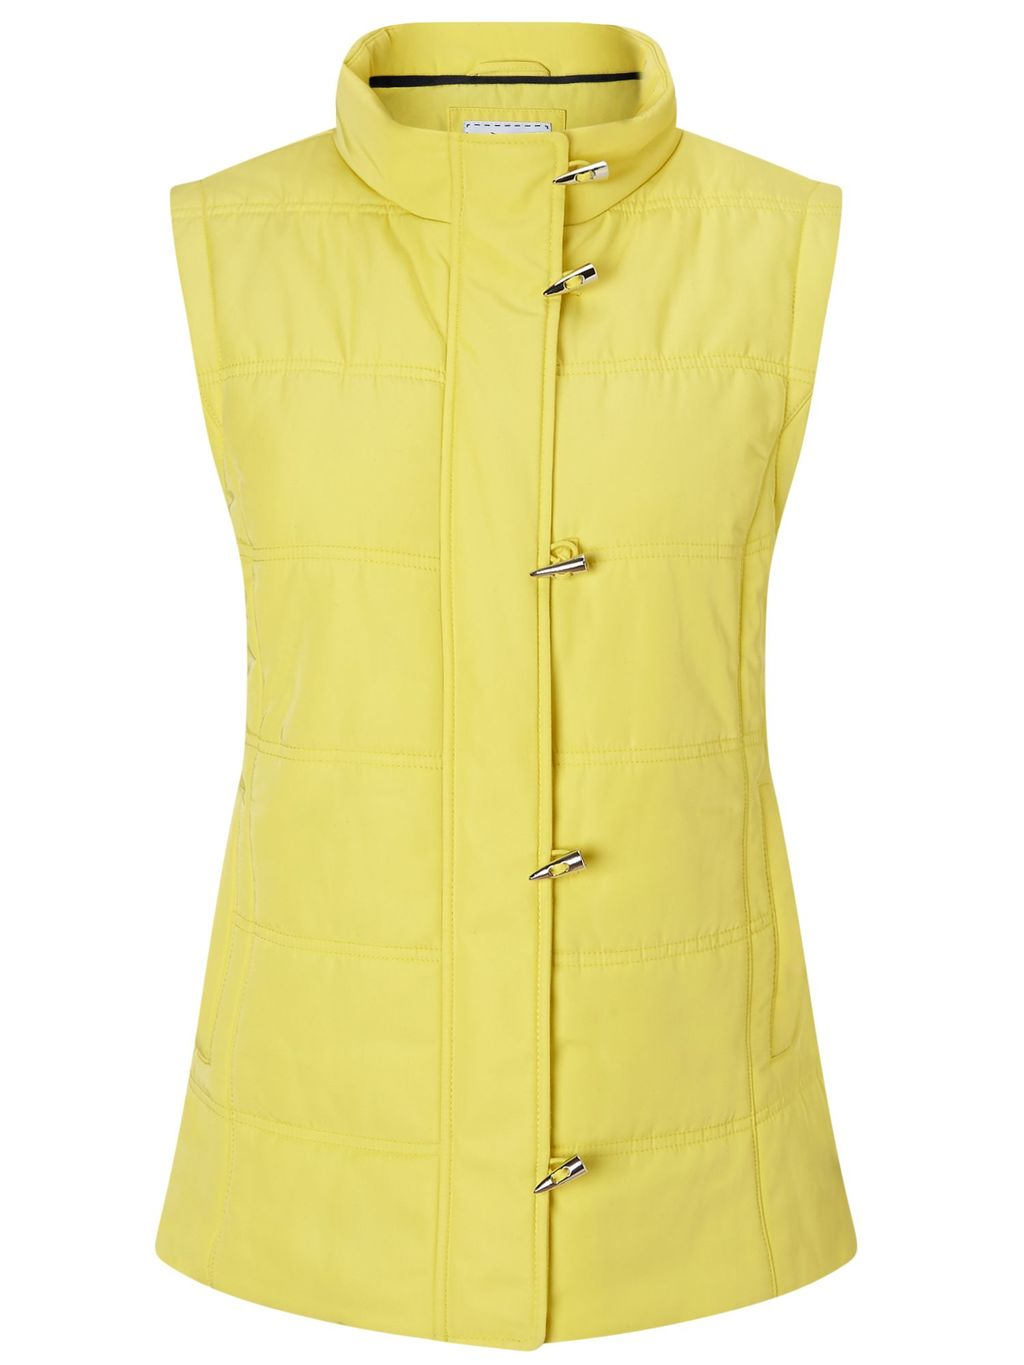 Lemon Toggle Gilet, Yellow - pattern: plain; sleeve style: sleeveless; style: gilet; collar: high neck; predominant colour: yellow; occasions: casual; length: standard; fit: straight cut (boxy); fibres: cotton - mix; sleeve length: sleeveless; texture group: cotton feel fabrics; collar break: high; pattern type: fabric; embellishment: quilted; season: s/s 2016